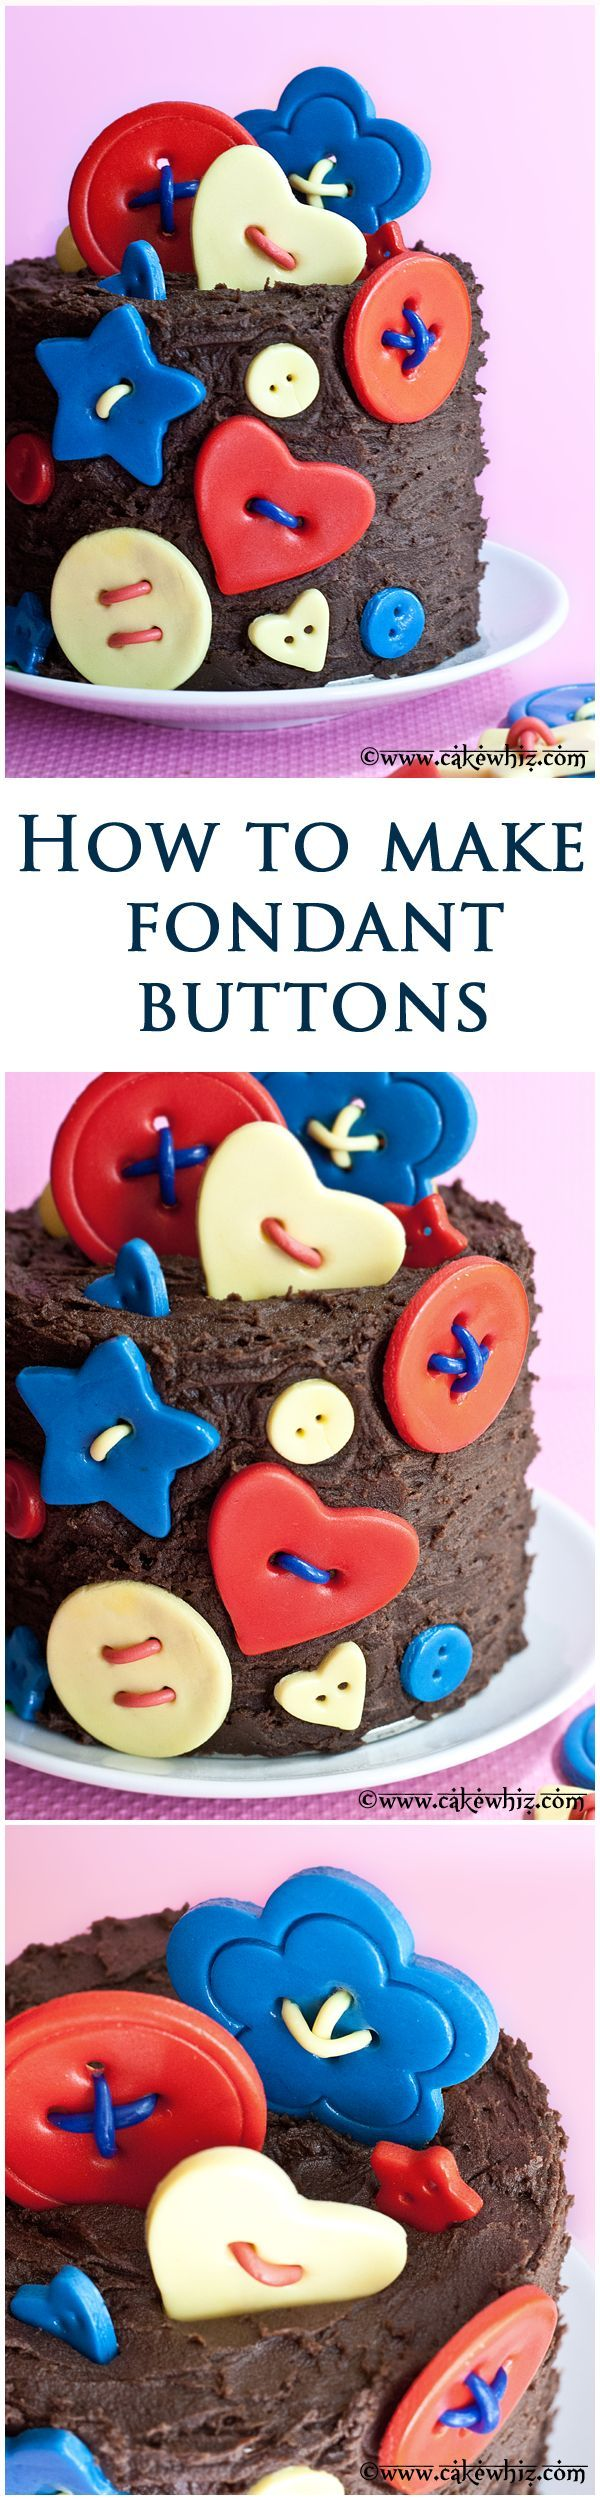 Learn to make EASY fondant buttons for your cakes and cupcakes. Great for baby showers and birthdays! From cakewhiz.com